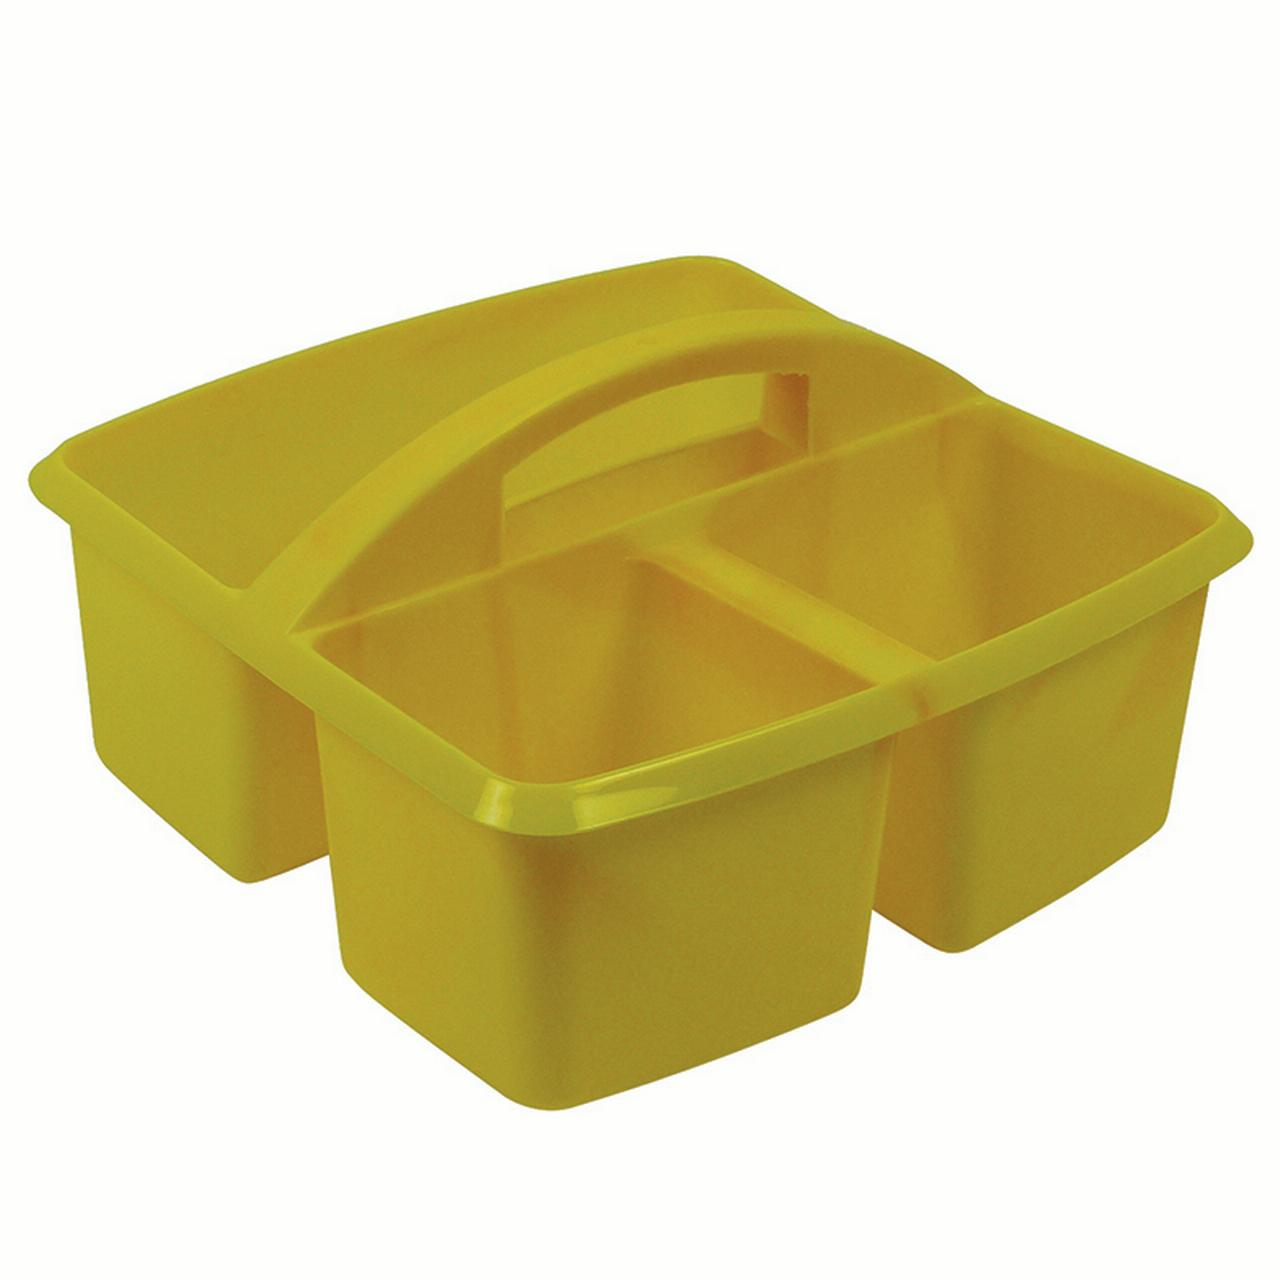 SMALL UTILITY CADDY YELLOW